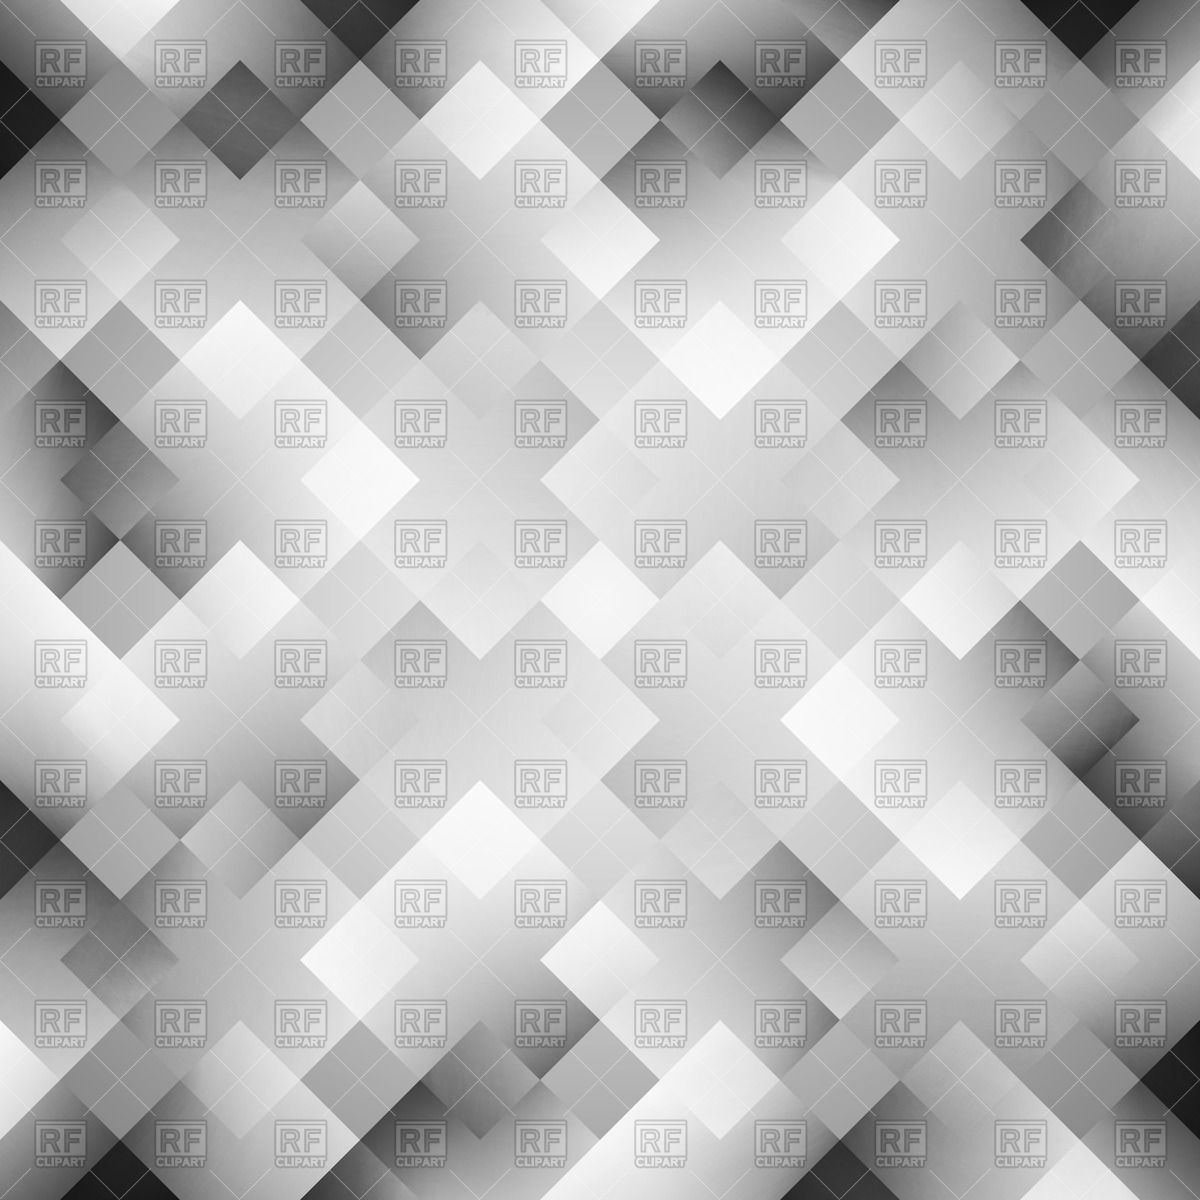 Abstract grey wallpaper Vector Image #64189 – RFclipart